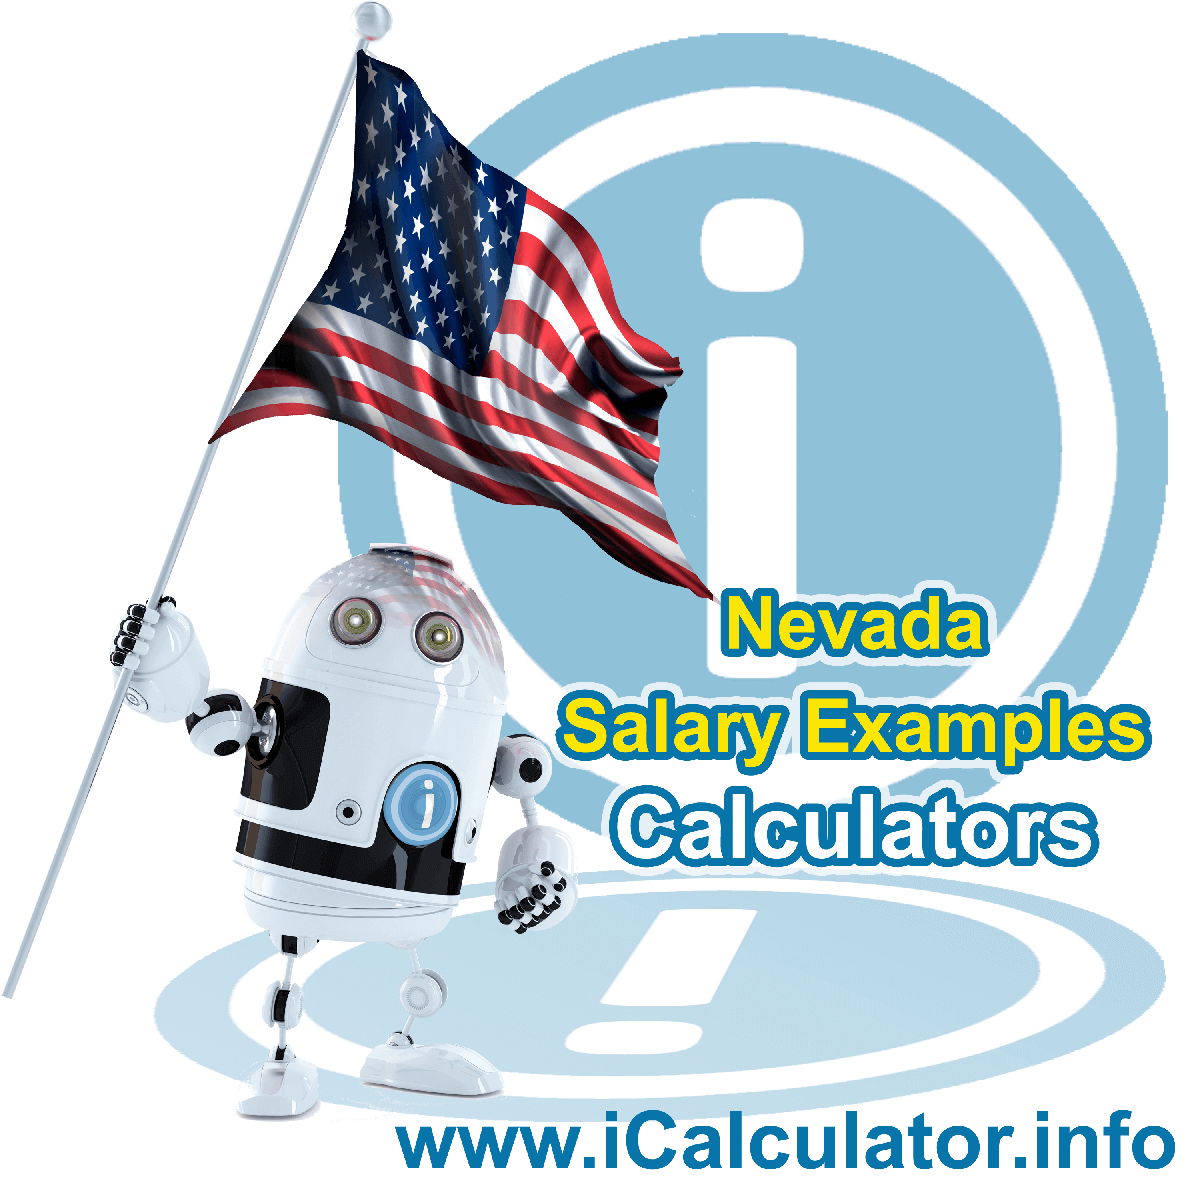 Nevada Salary Example for $130,000.00 in 2020 | iCalculator | $130,000.00 salary example for employee and employer paying Nevada State tincome taxes. Detailed salary after tax calculation including Nevada State Tax, Federal State Tax, Medicare Deductions, Social Security, Capital Gains and other income tax and salary deductions complete with supporting Nevada state tax tables